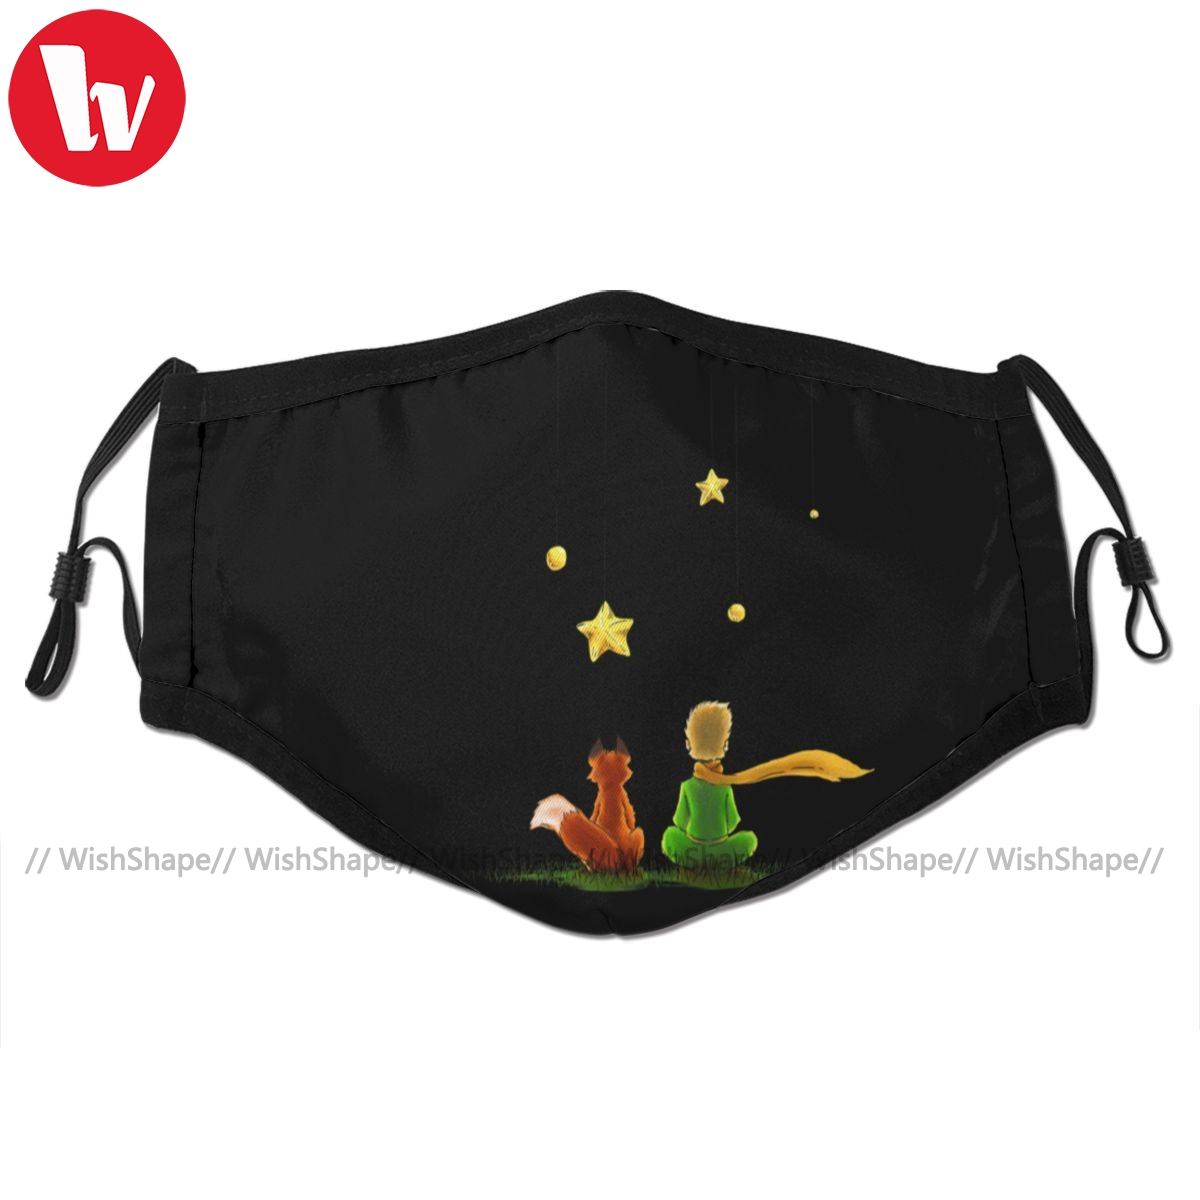 Little Prince Mouth Face Mask Le Petit Prince Facial Mask Cool Kawai With 2 Filters For Adult